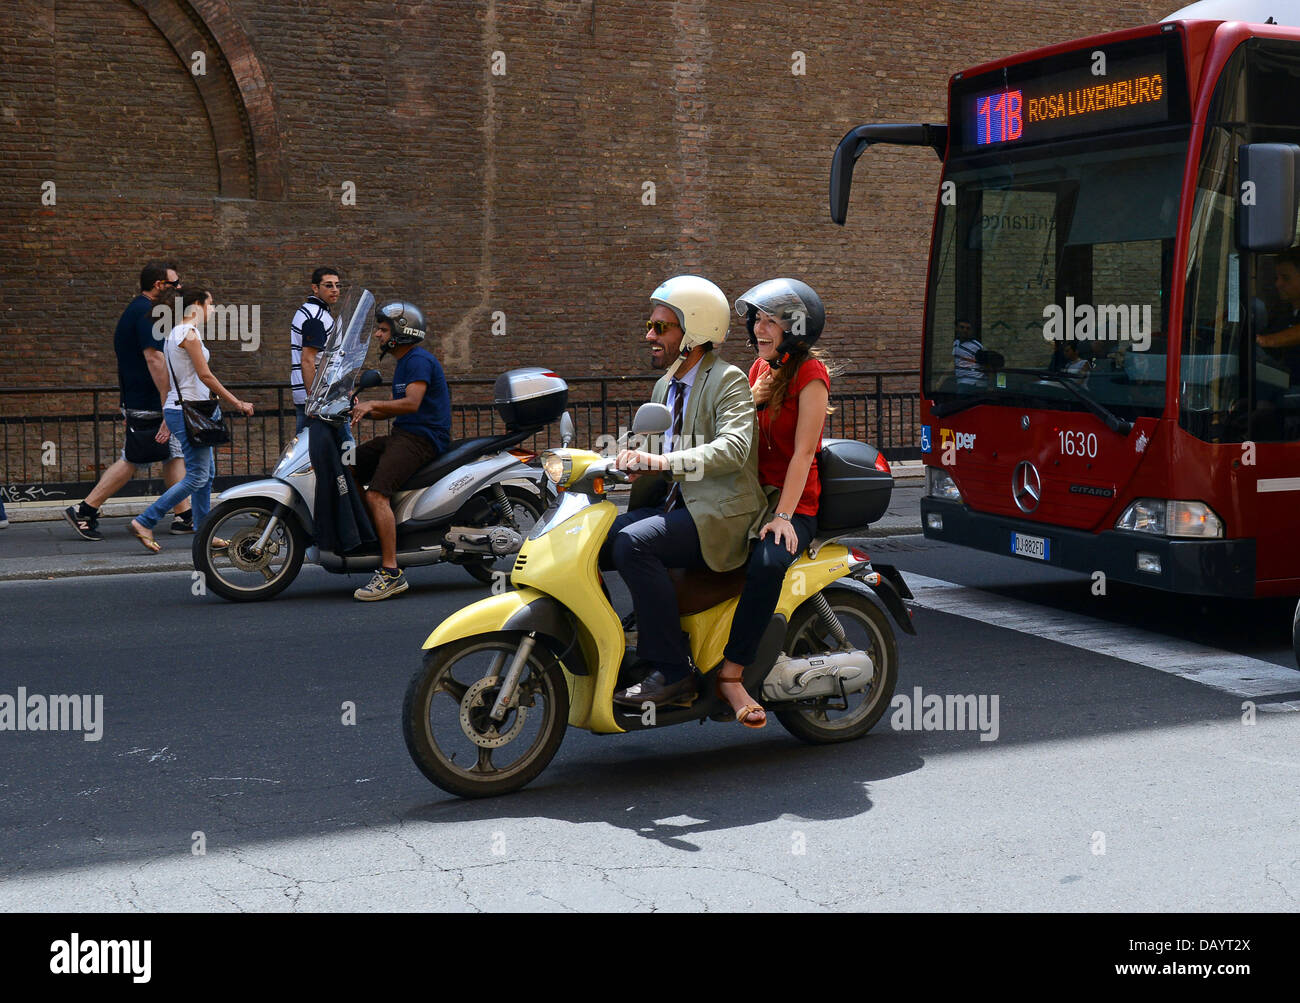 Happy smiling man and woman riding Yamaha scooter in Bologna Italy - Stock Image